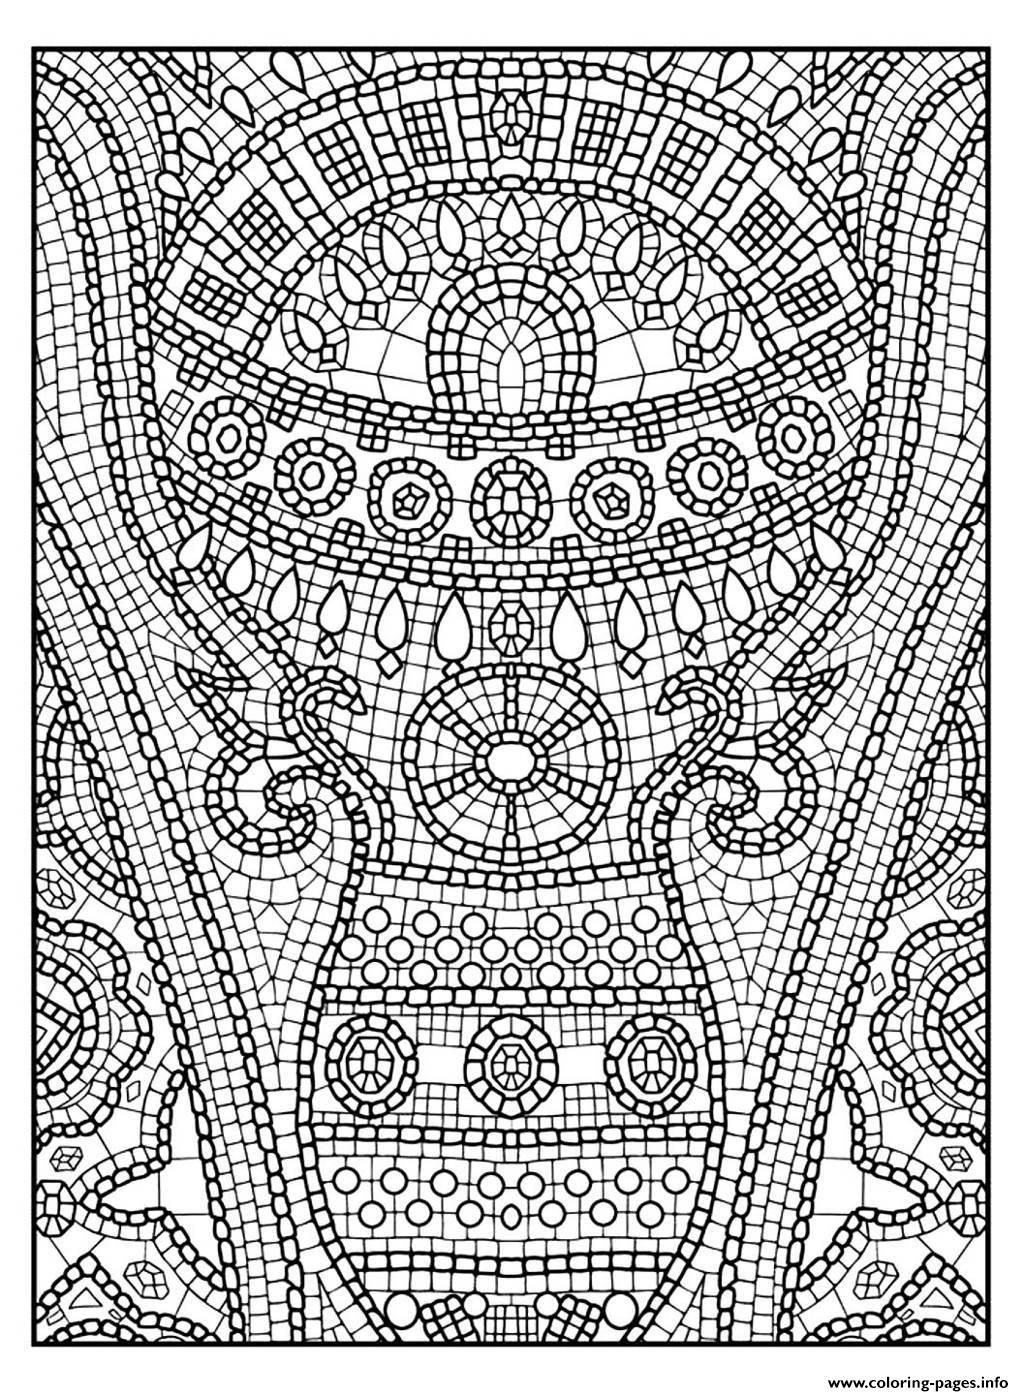 free printable coloring pages for adults zen : Adult Zen Anti Stress To Print 11 Coloring Pages Printable And Coloring Book To Print For Free Find More Coloring Pages Online For Kids And Adults Of Adult